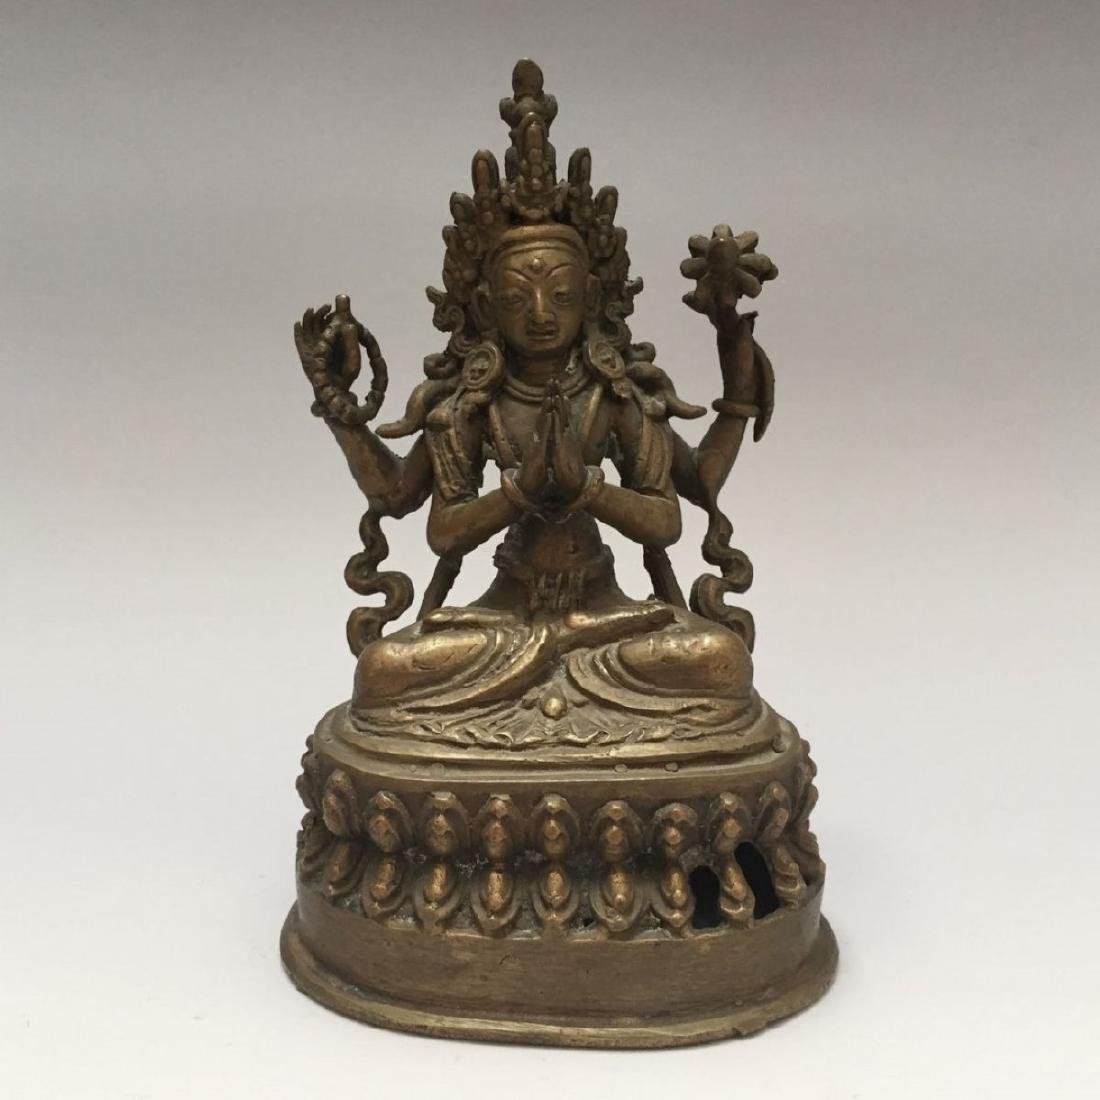 ANTIQUE TIBETAN BRONZE BUDDHA FIGURE